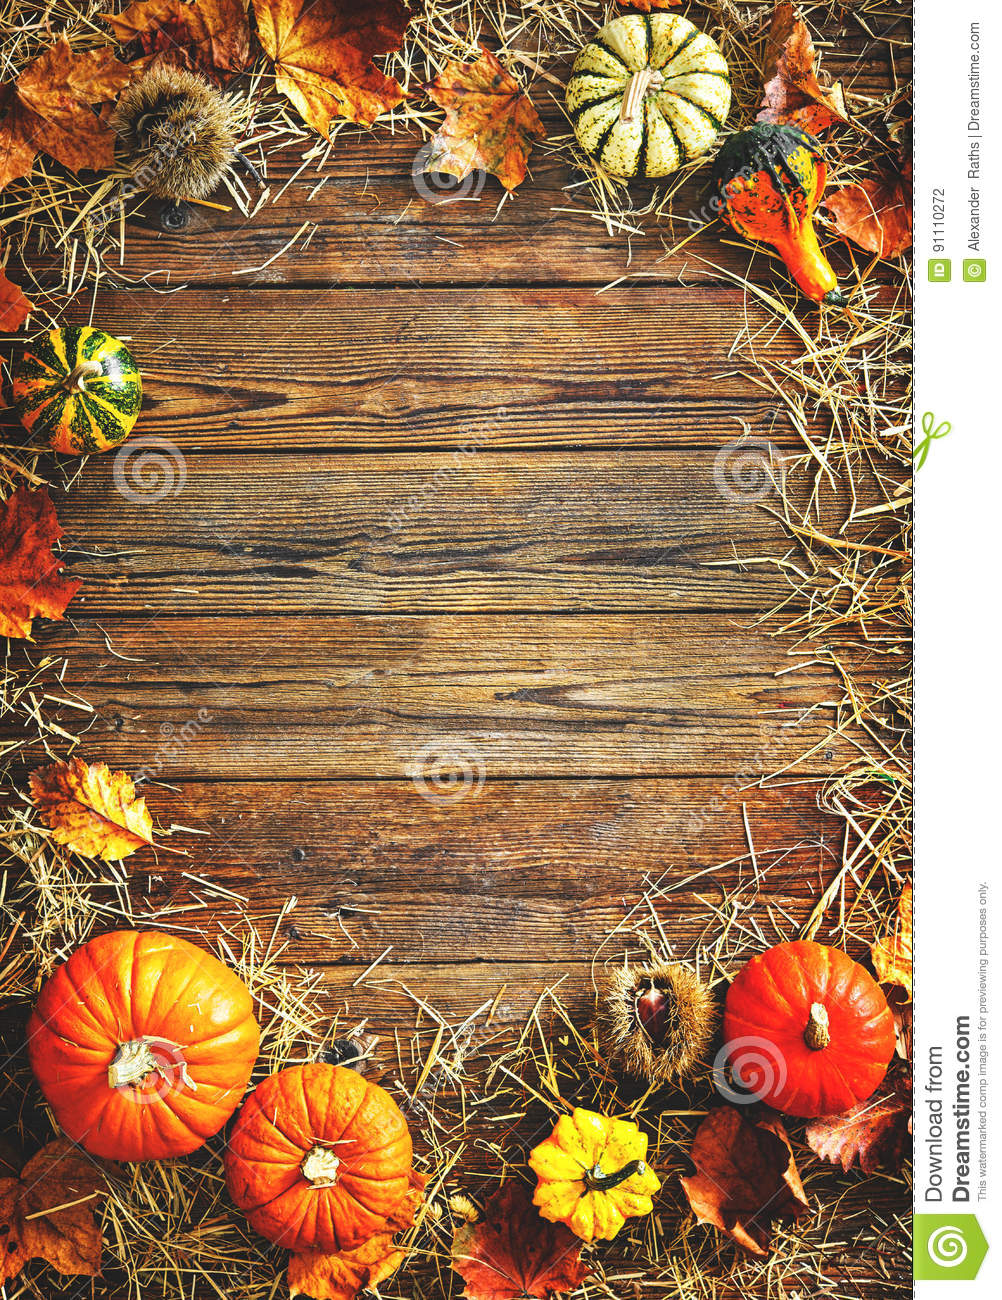 Download Harvest Or Thanksgiving Background With Gourds And Straw Stock Photo